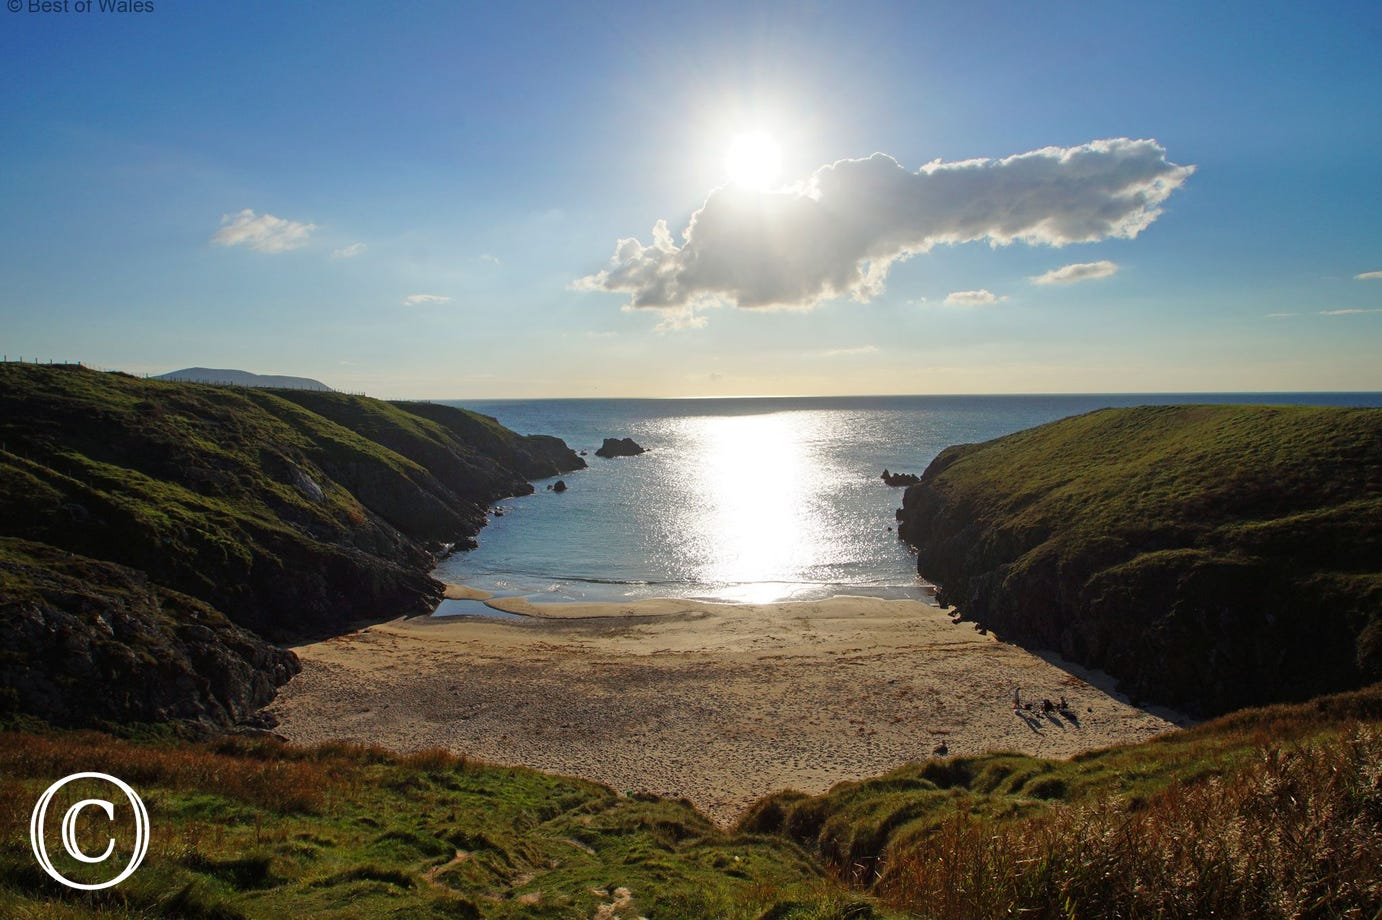 Porth Iago - a hidden cove less than a mile from your farmhouse